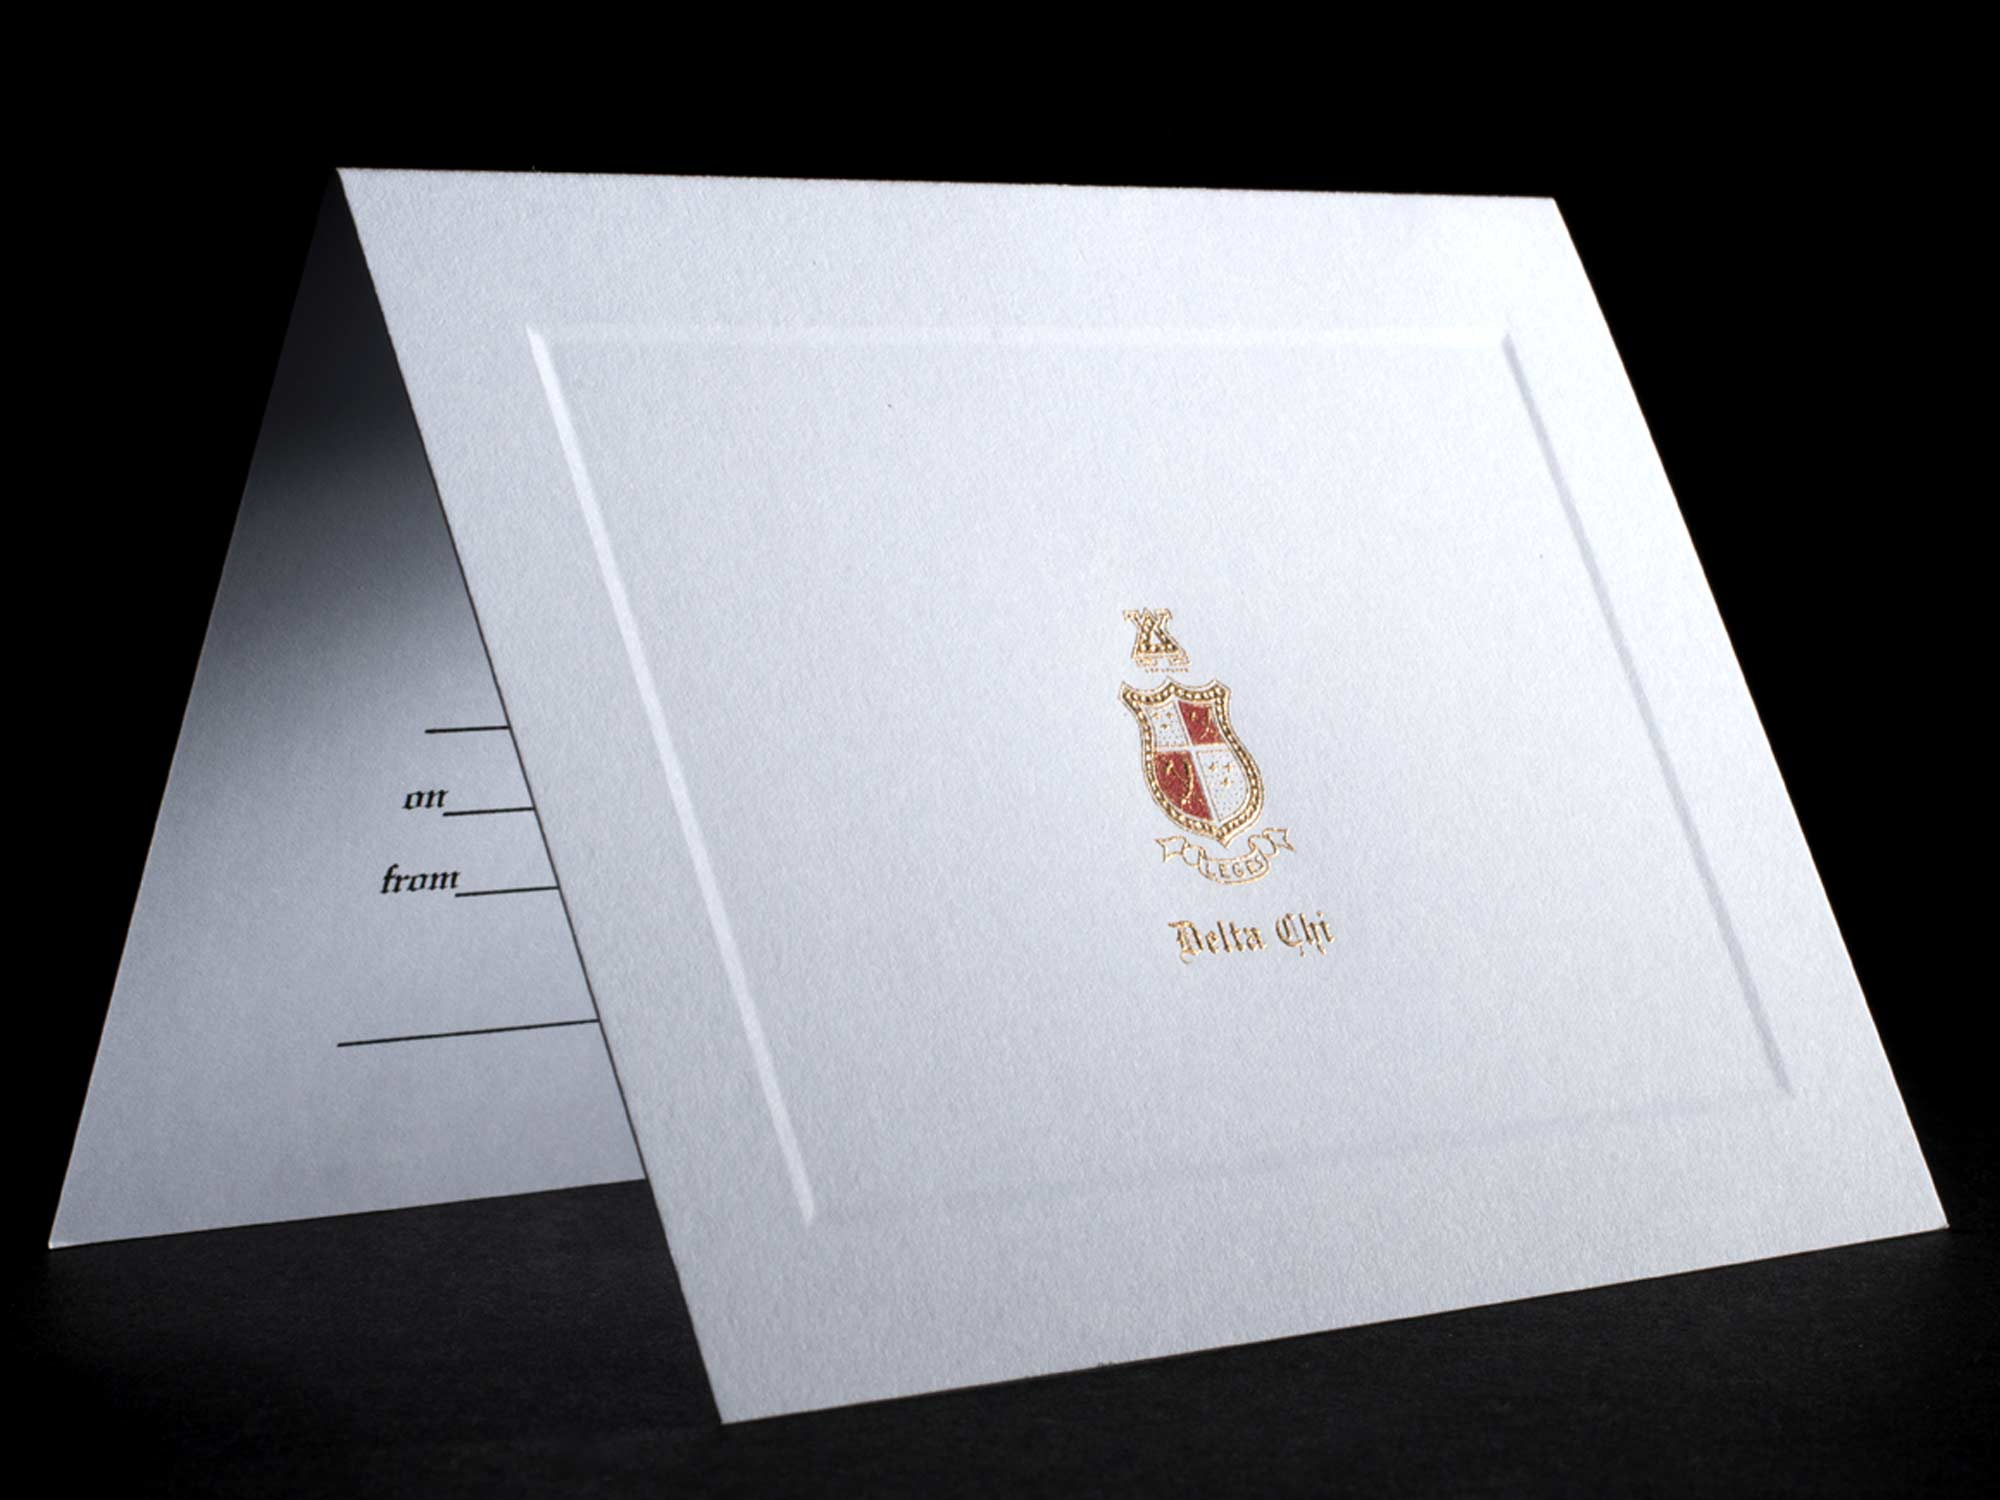 Engraved Invitations Delta Chi